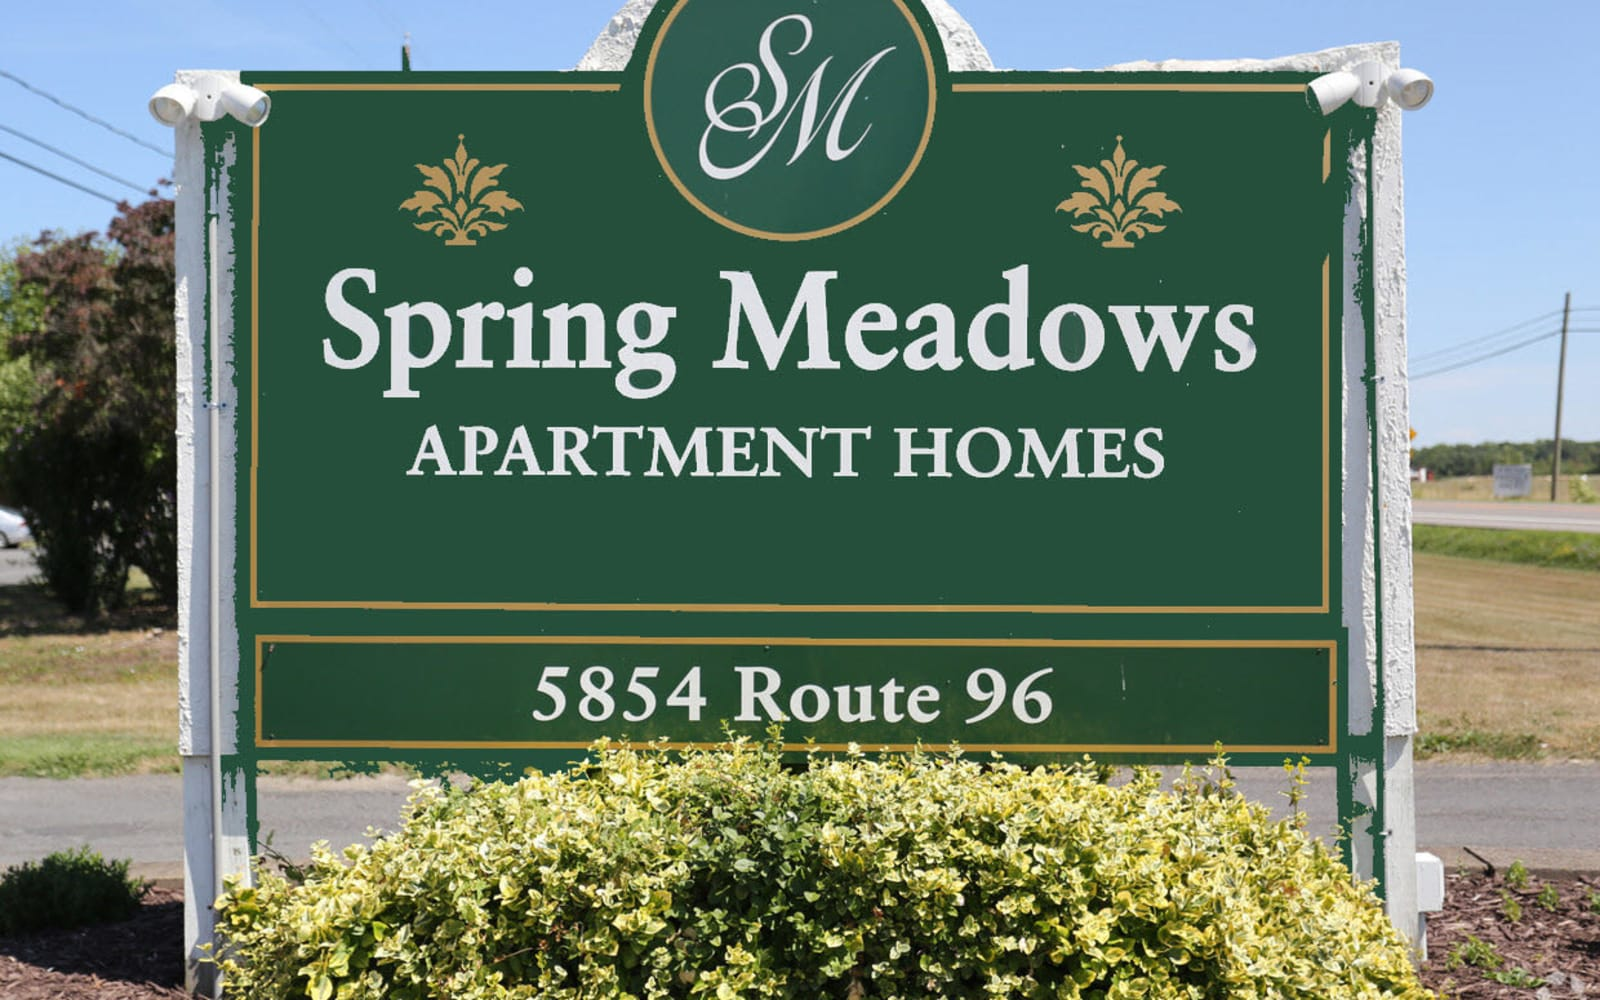 Main entrance to Spring Meadows in Romulus, New York